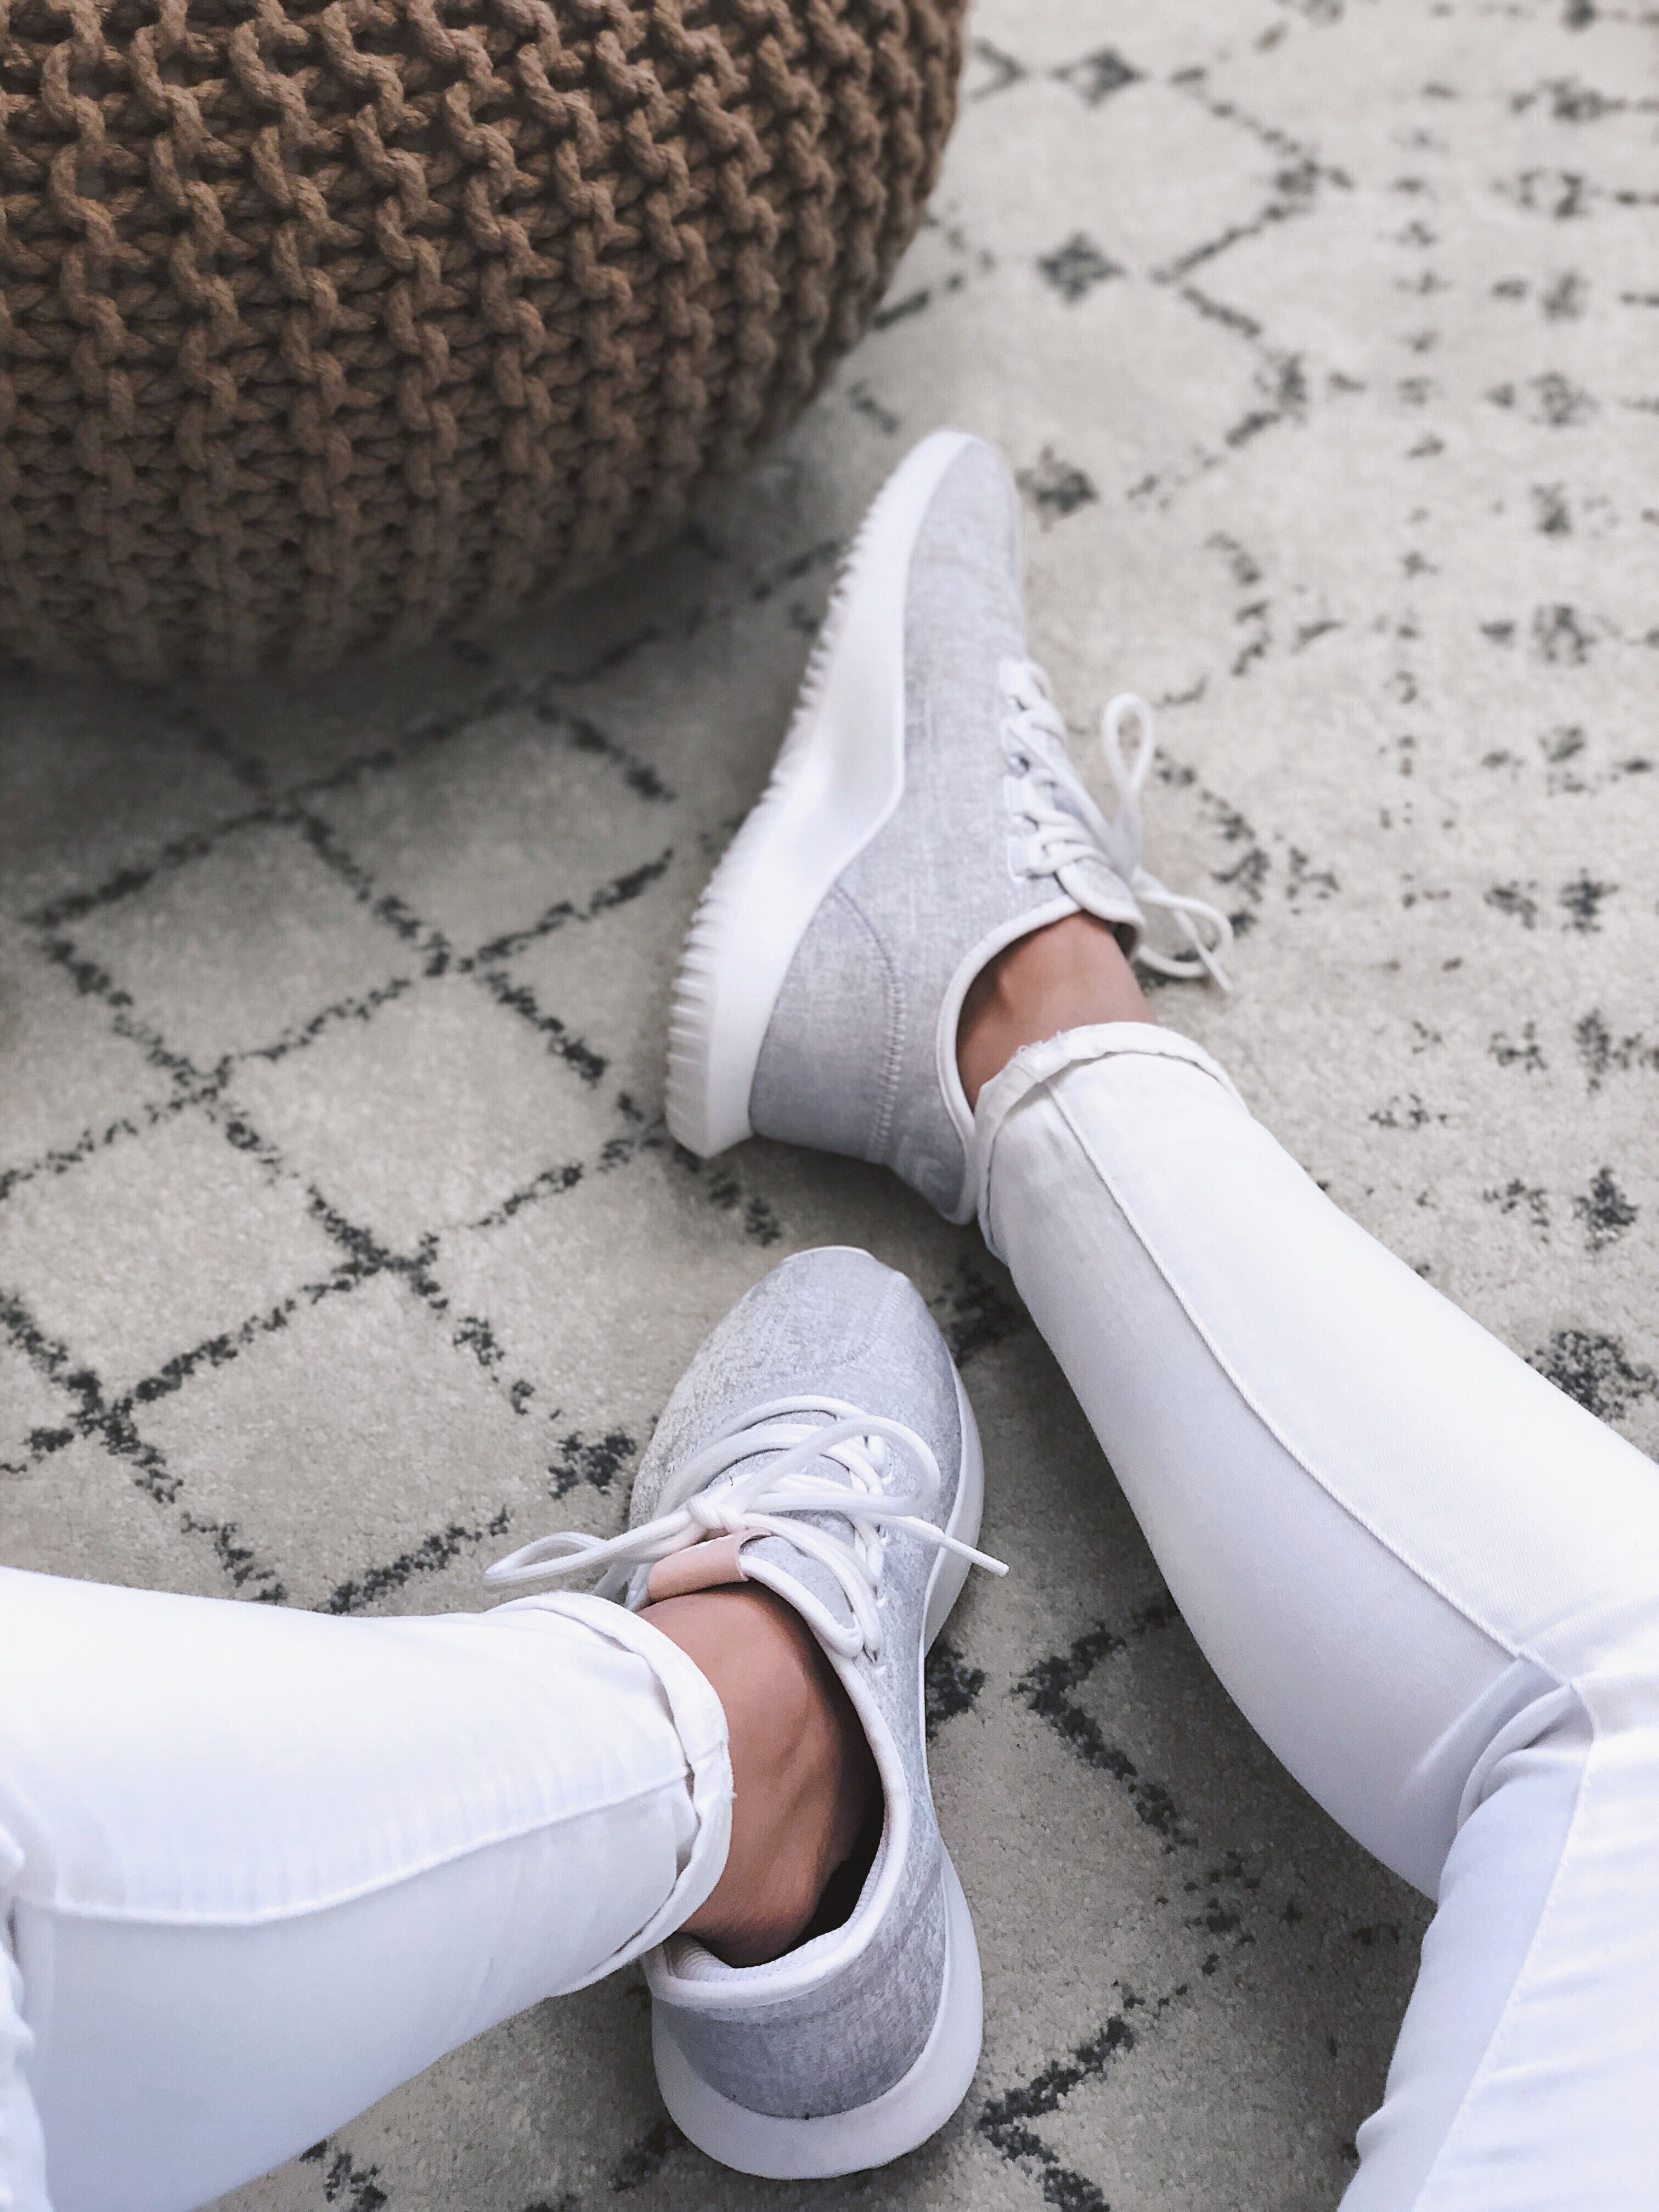 Adidas Tubular Shadow Adidas Shoes Tubular Adidas Tubular